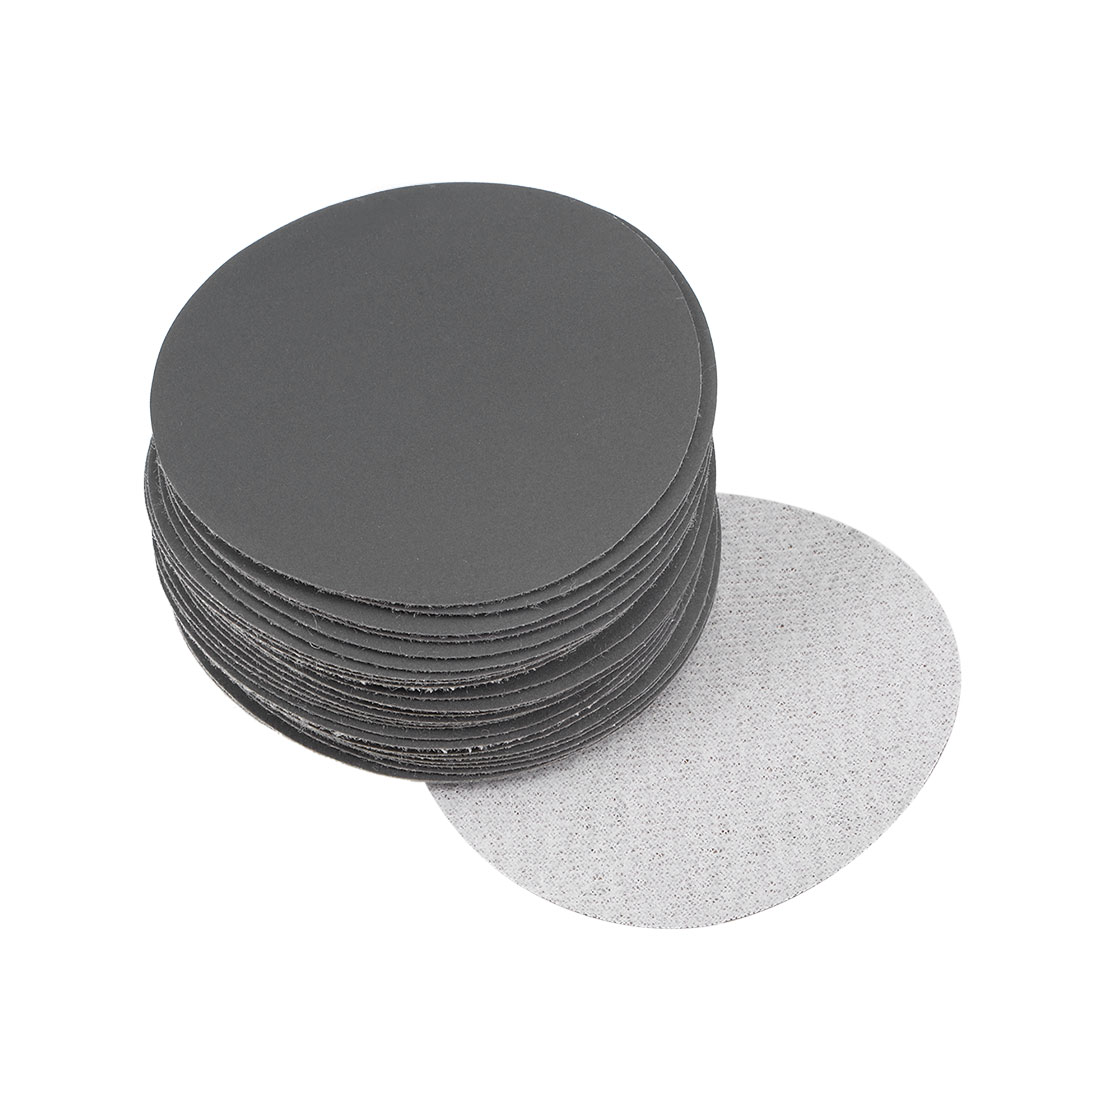 3 inch Wet Dry Discs 1000 Grit Hook and Loop Sanding Disc Silicon Carbide 30pcs